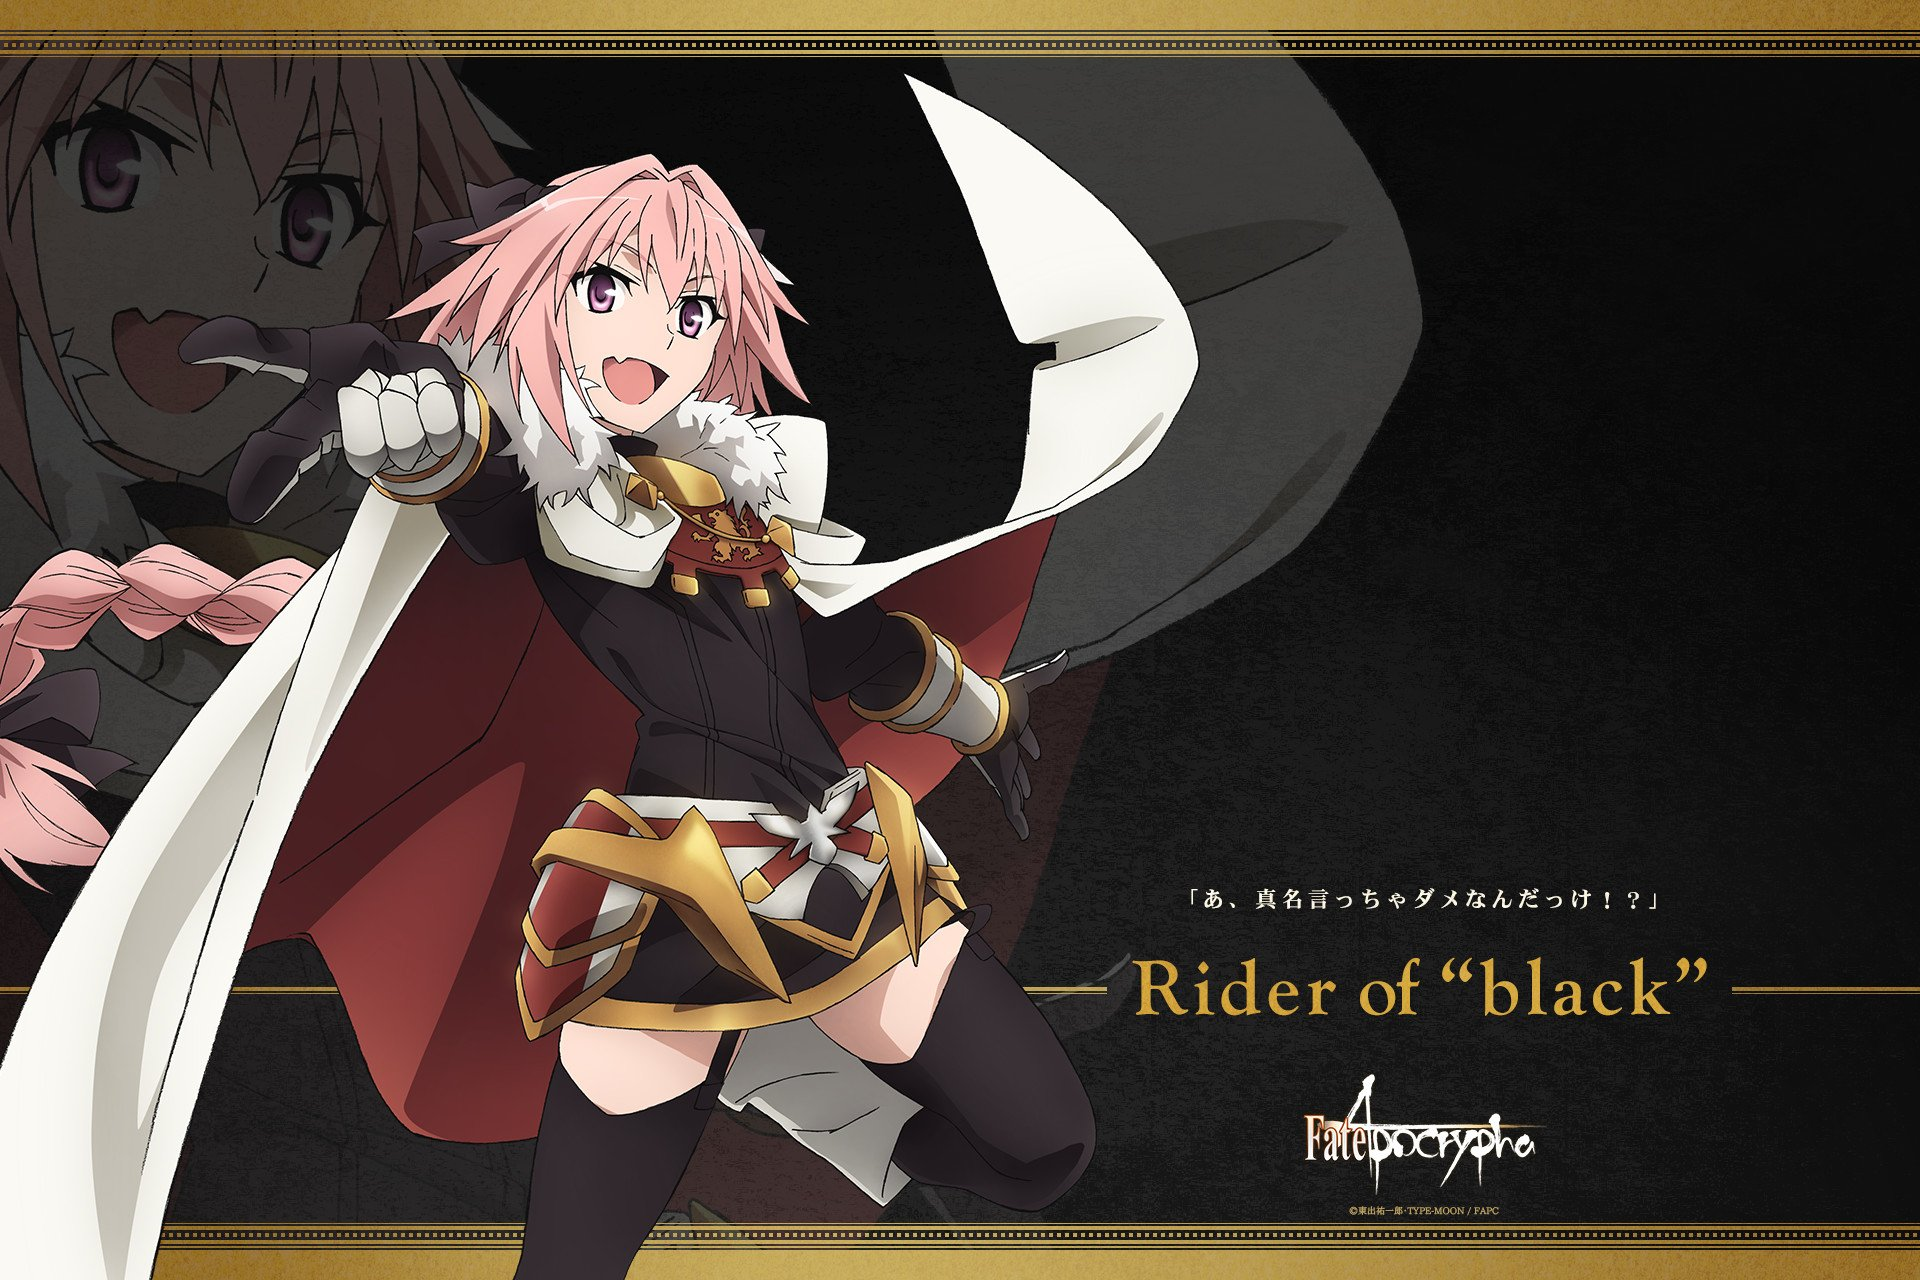 Anime - Fate/Apocrypha Rider of Black (Fate/Apocrypha) Wallpaper